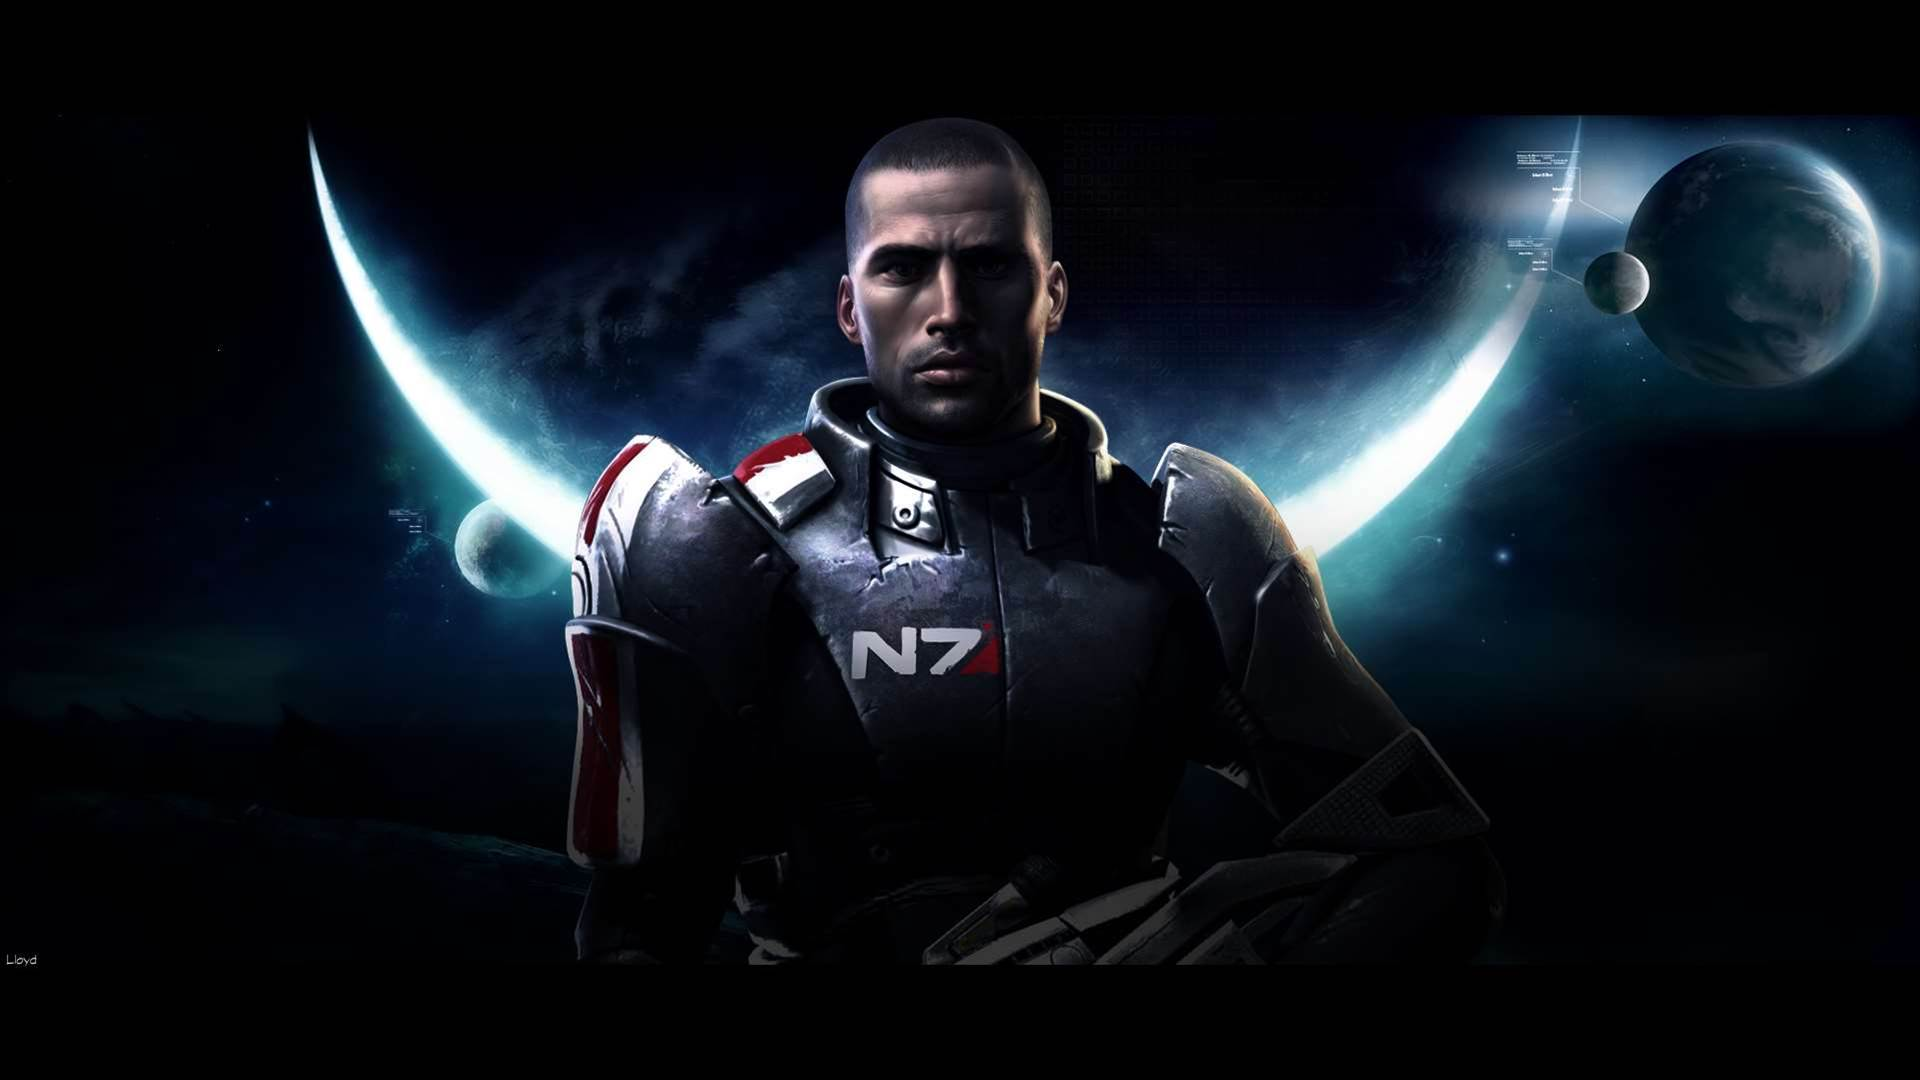 Coming back to Mass Effect